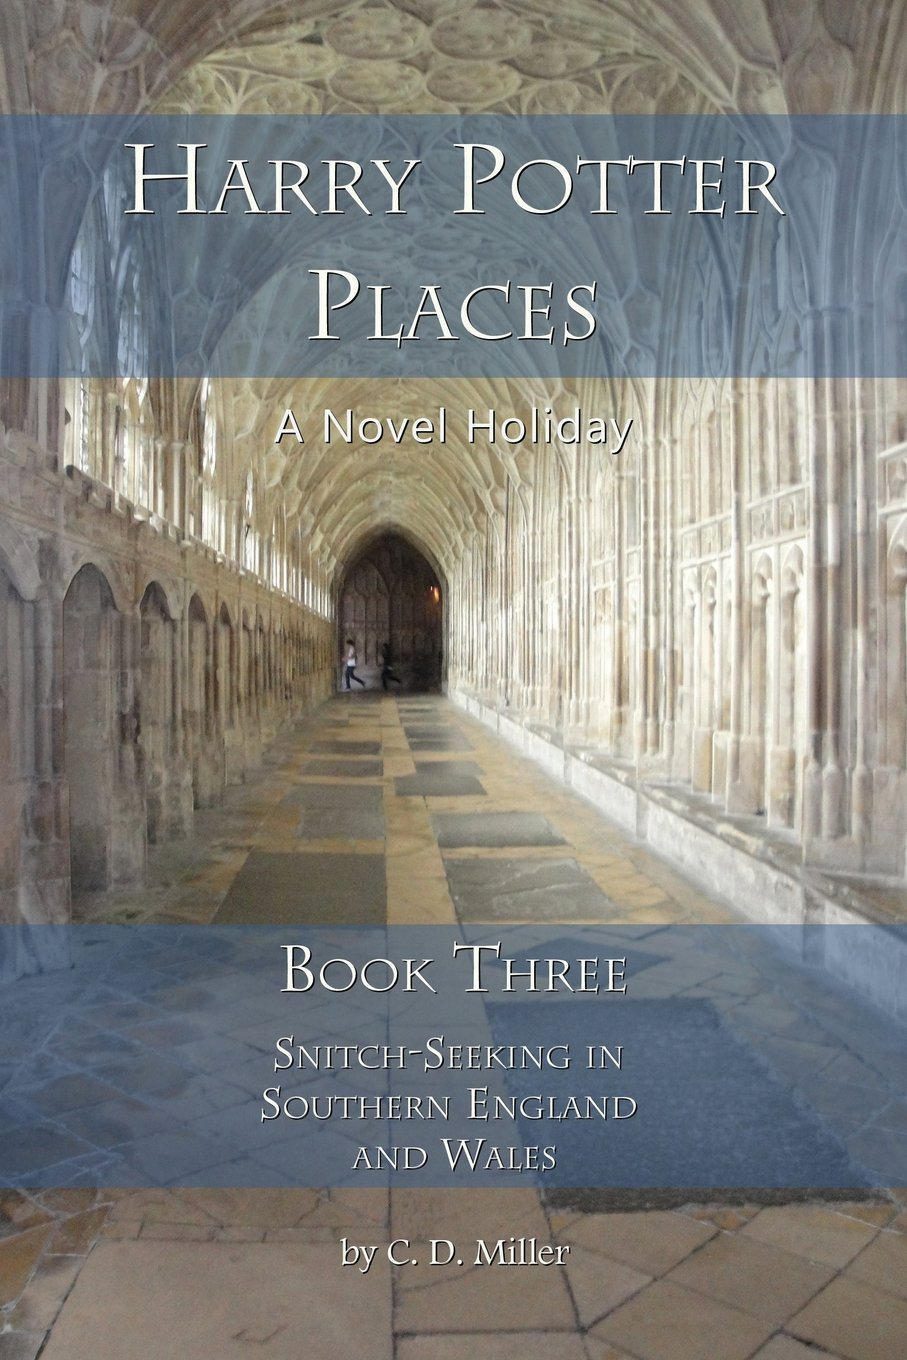 harry-potter-places-book-three-snitch-seeking-in-southern-england-and-wales